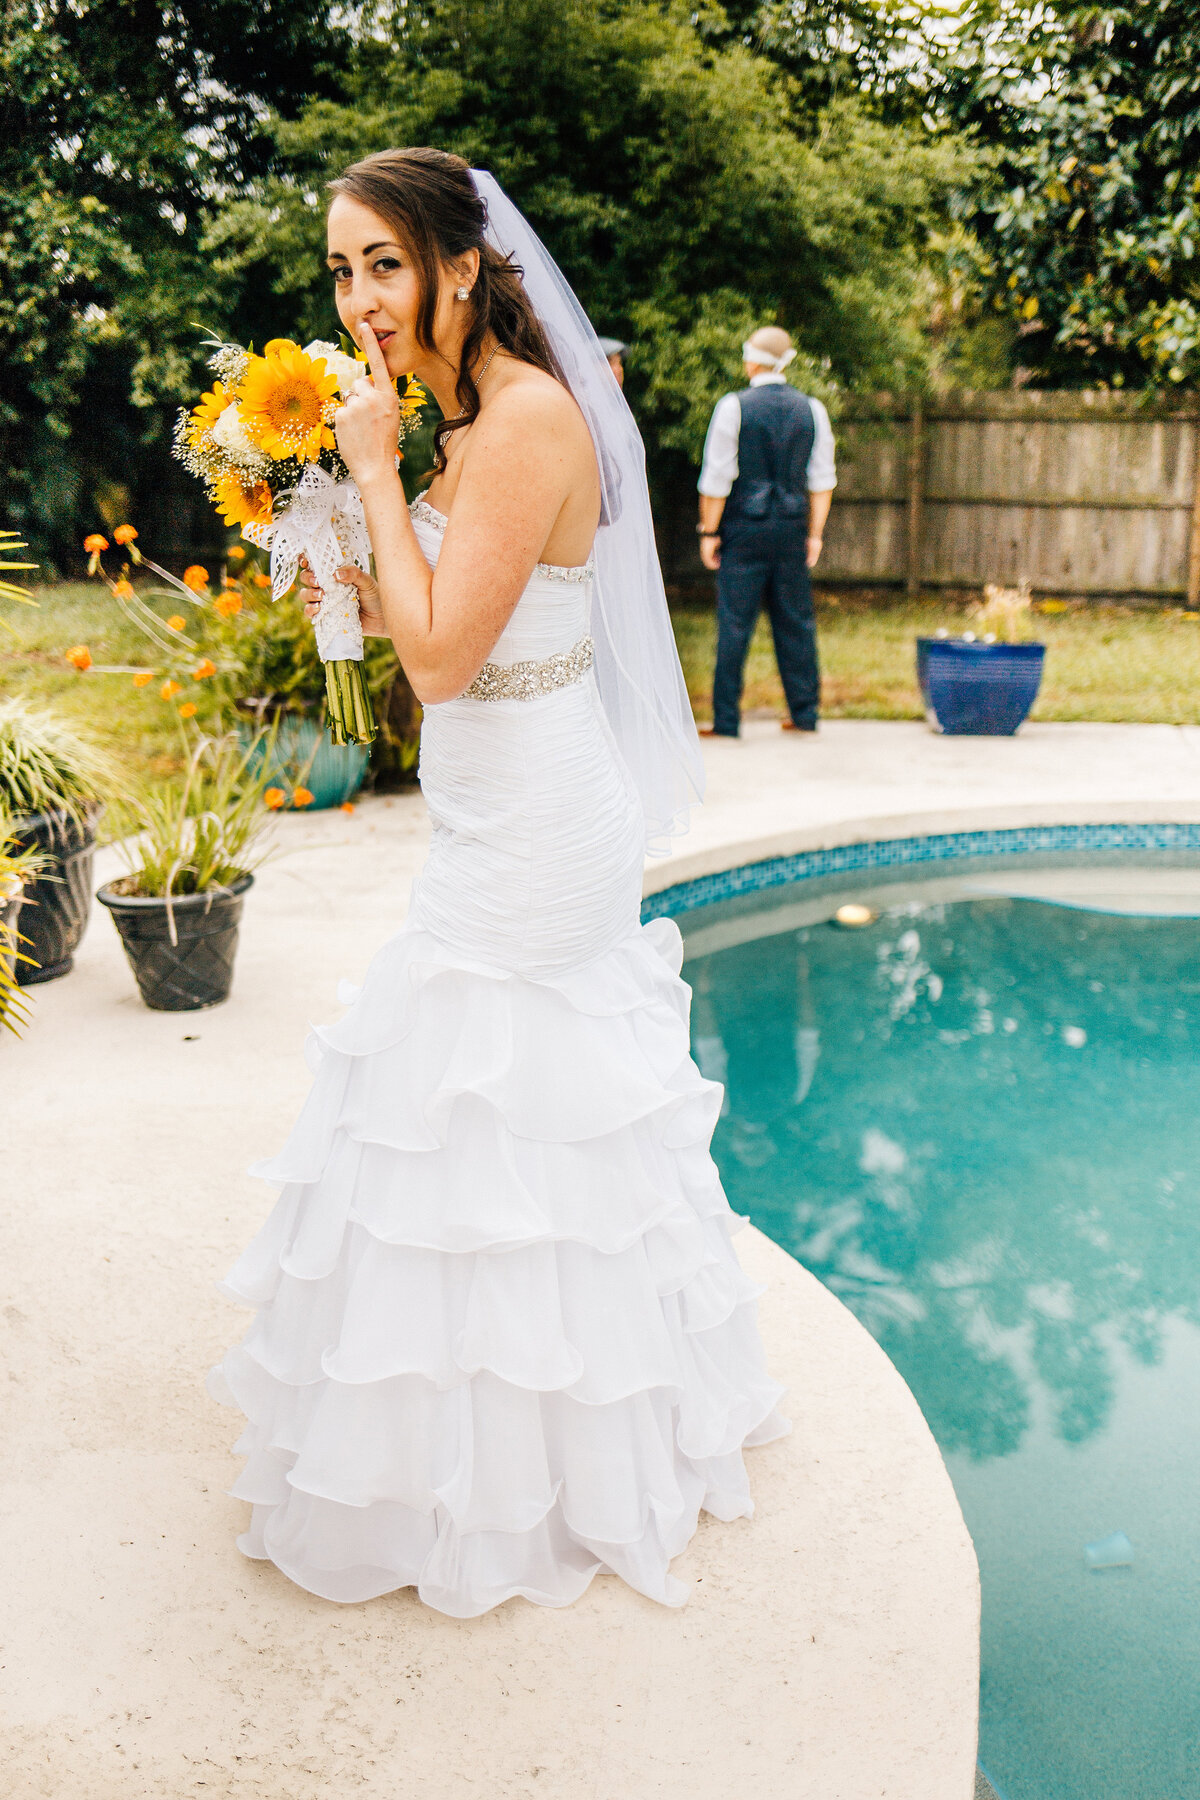 Kimberly_Hoyle_Photography_Marrero_Millikens_Reef_Wedding-16